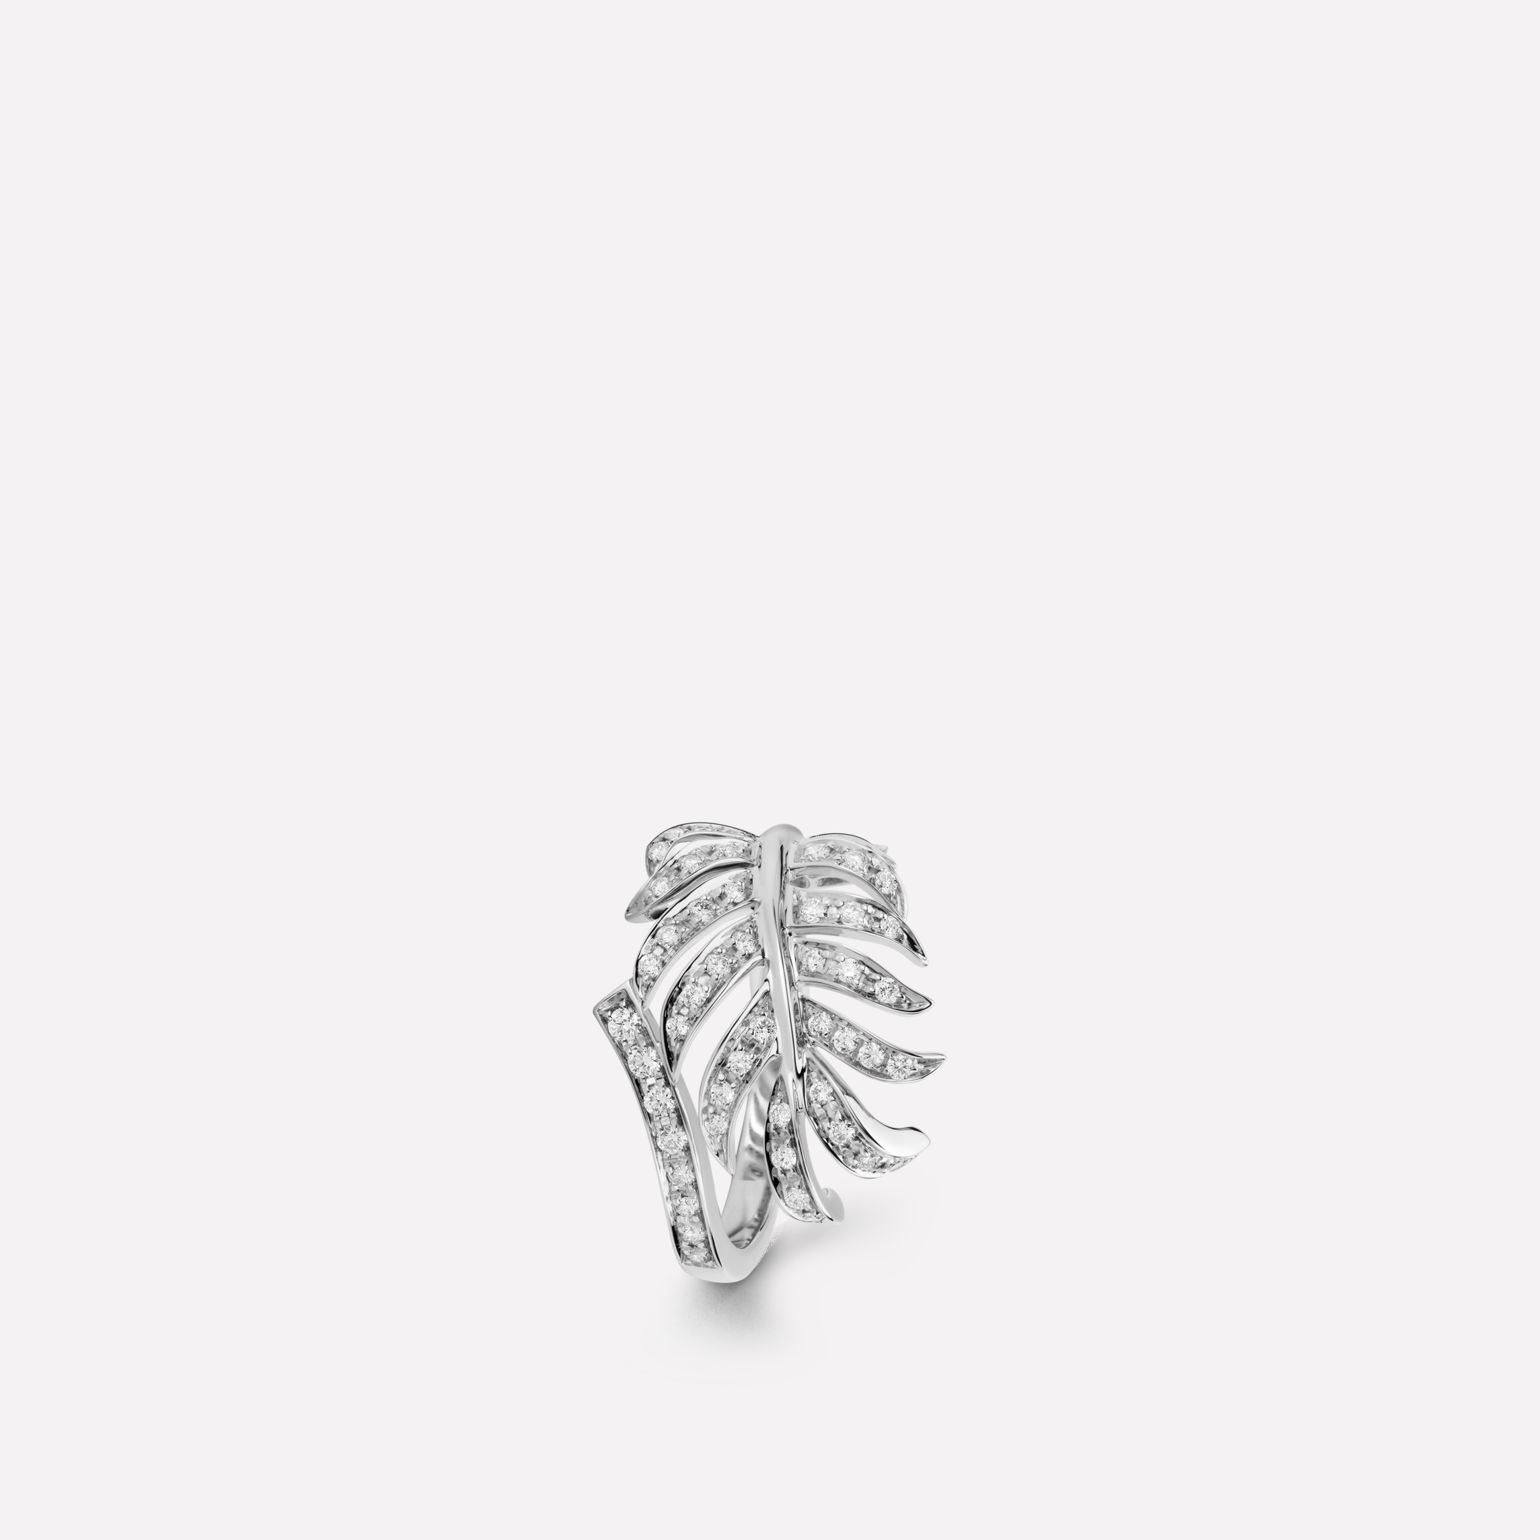 Plume de CHANEL Ring Plume ring in 18K white gold and diamonds